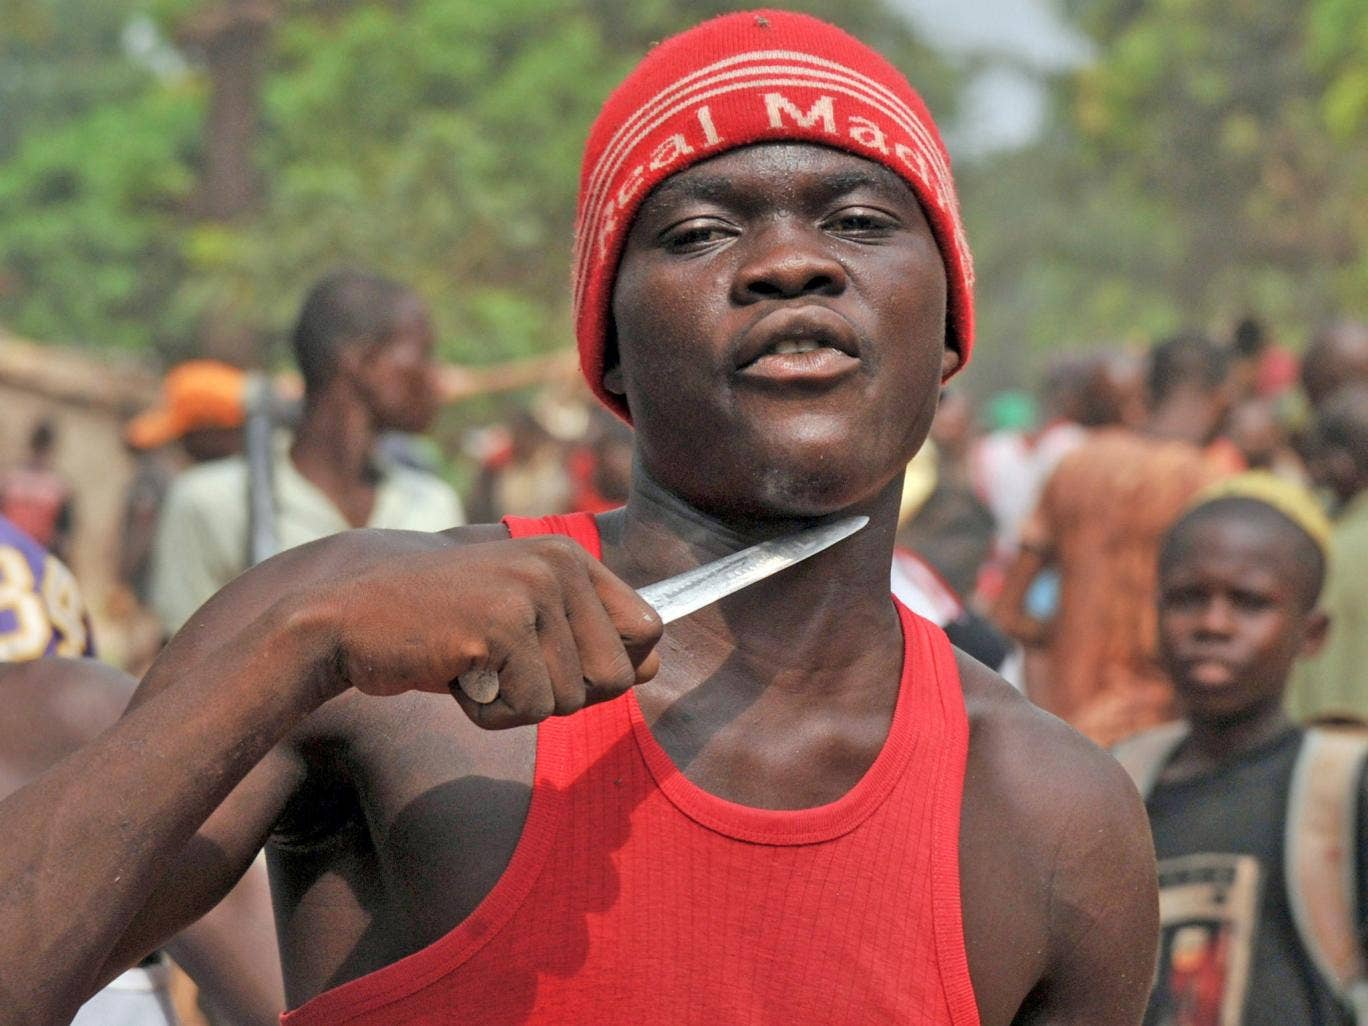 A Christian militiaman in Bangui claiming to be looking for Muslims